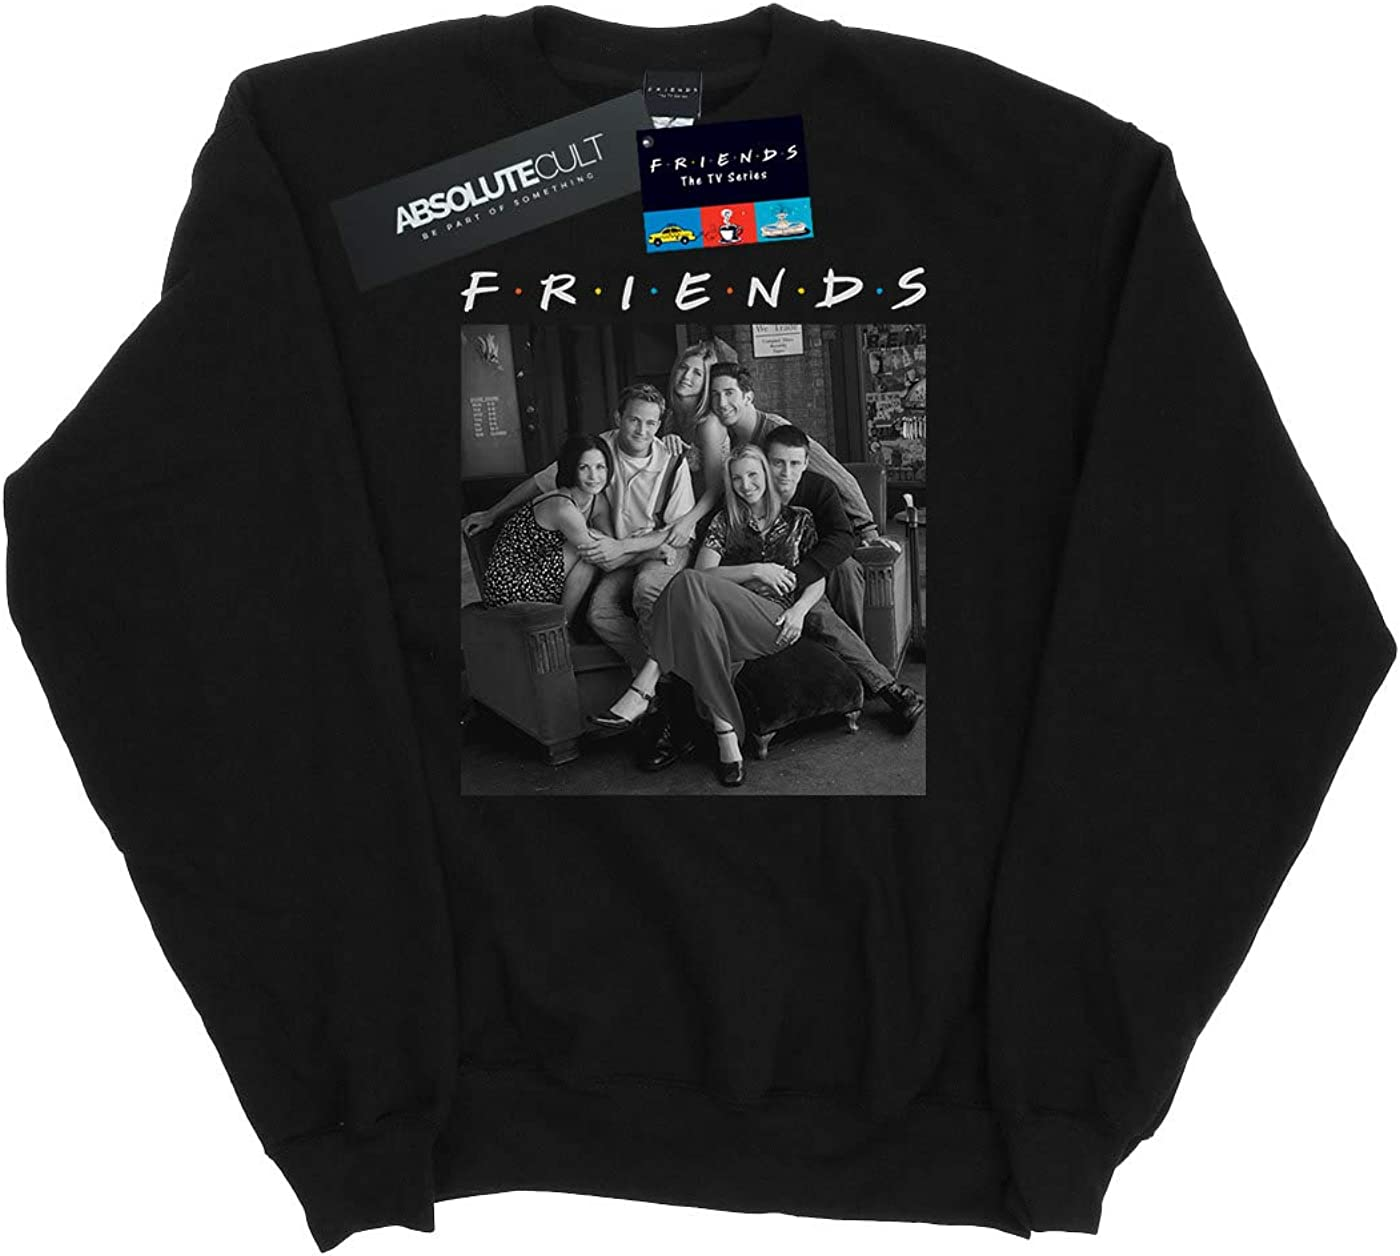 Absolute Cult Friends Girls Black and White Photo Sweatshirt